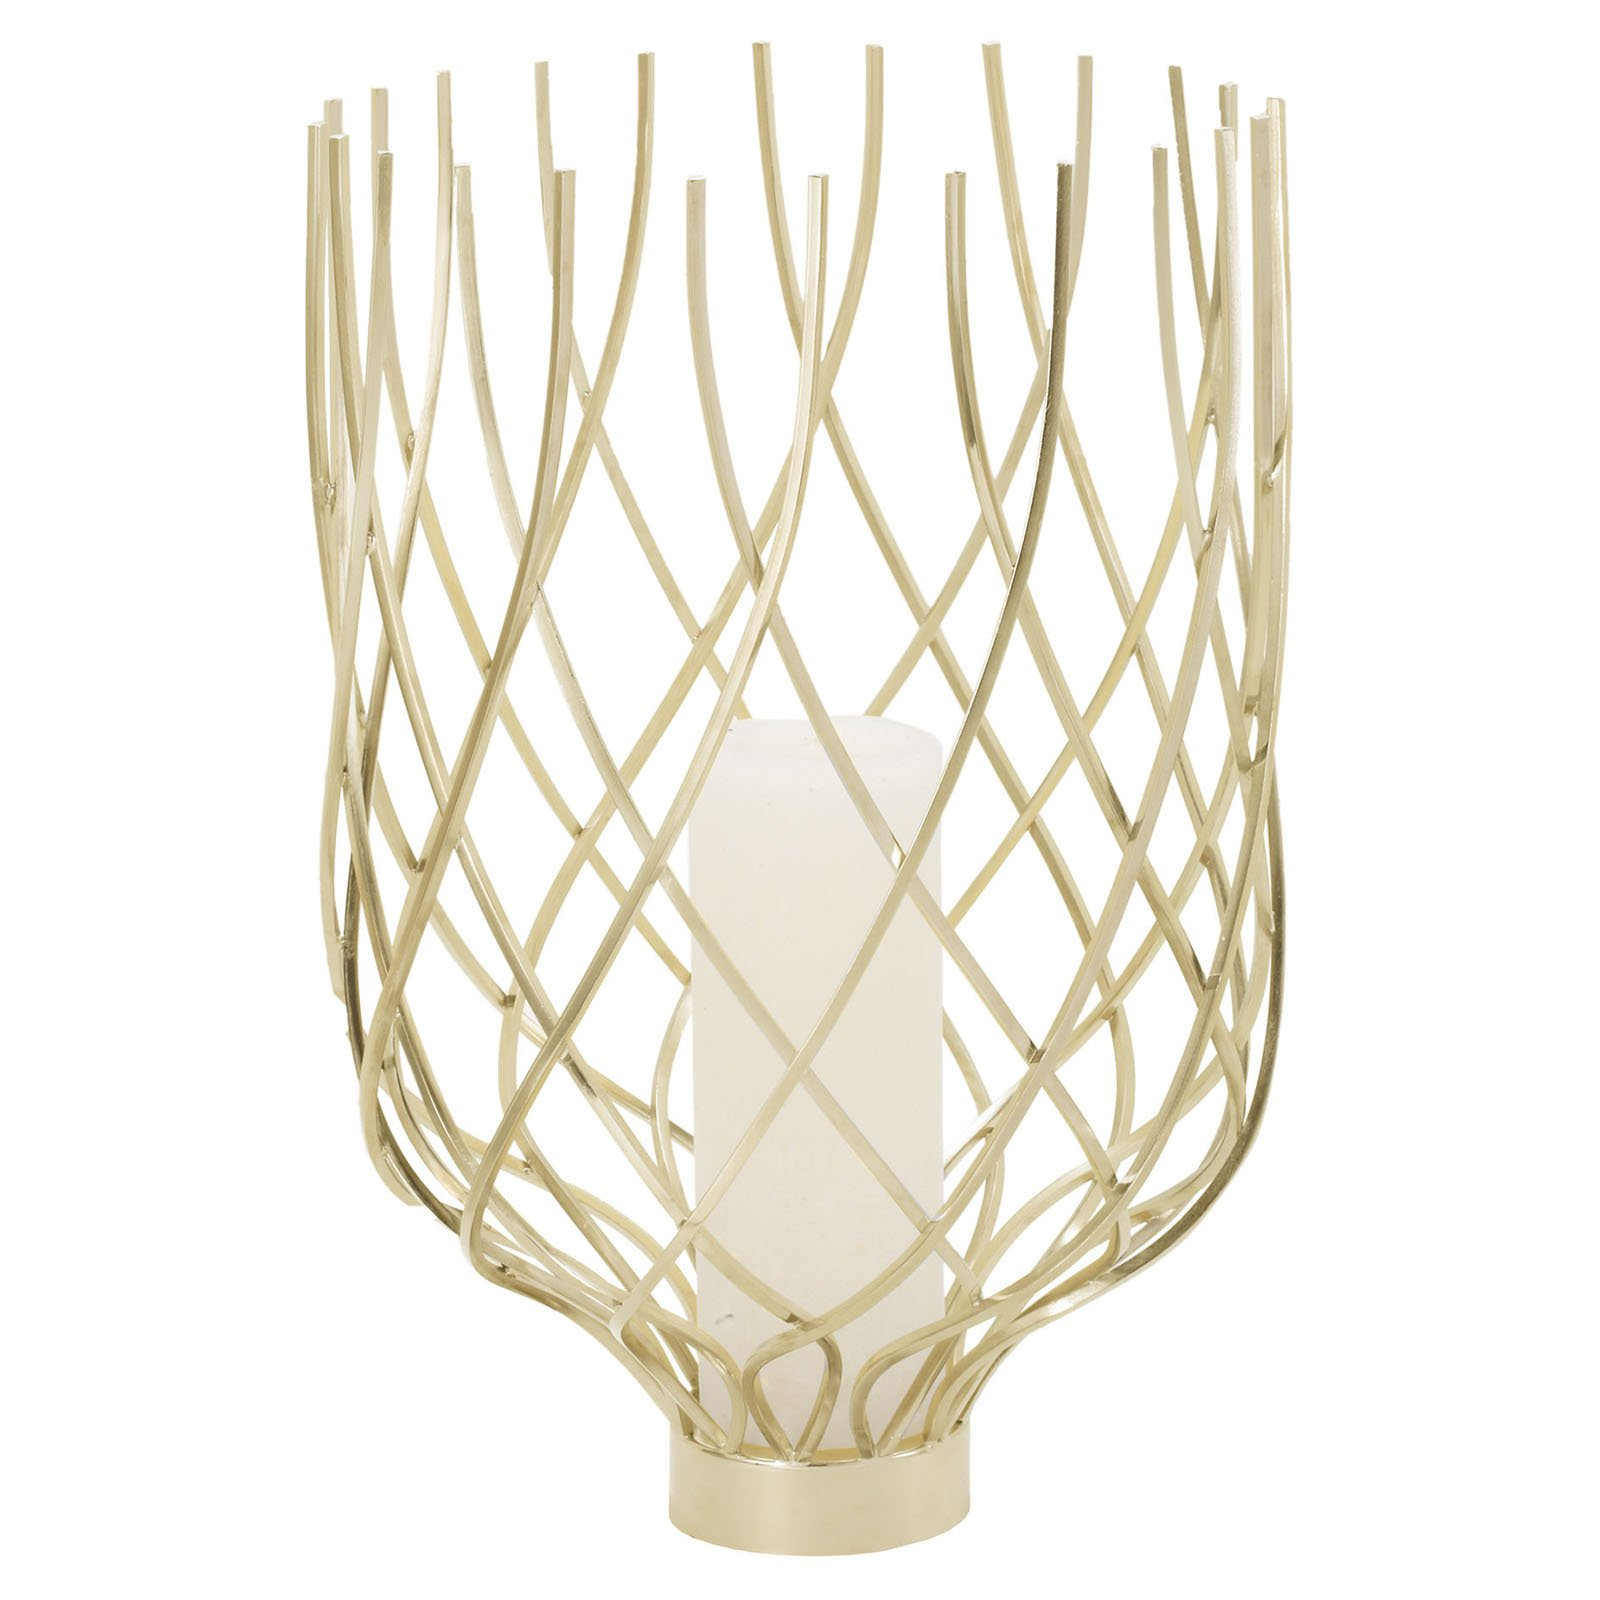 Dimond Home Vortex Hurricane Candle Holder